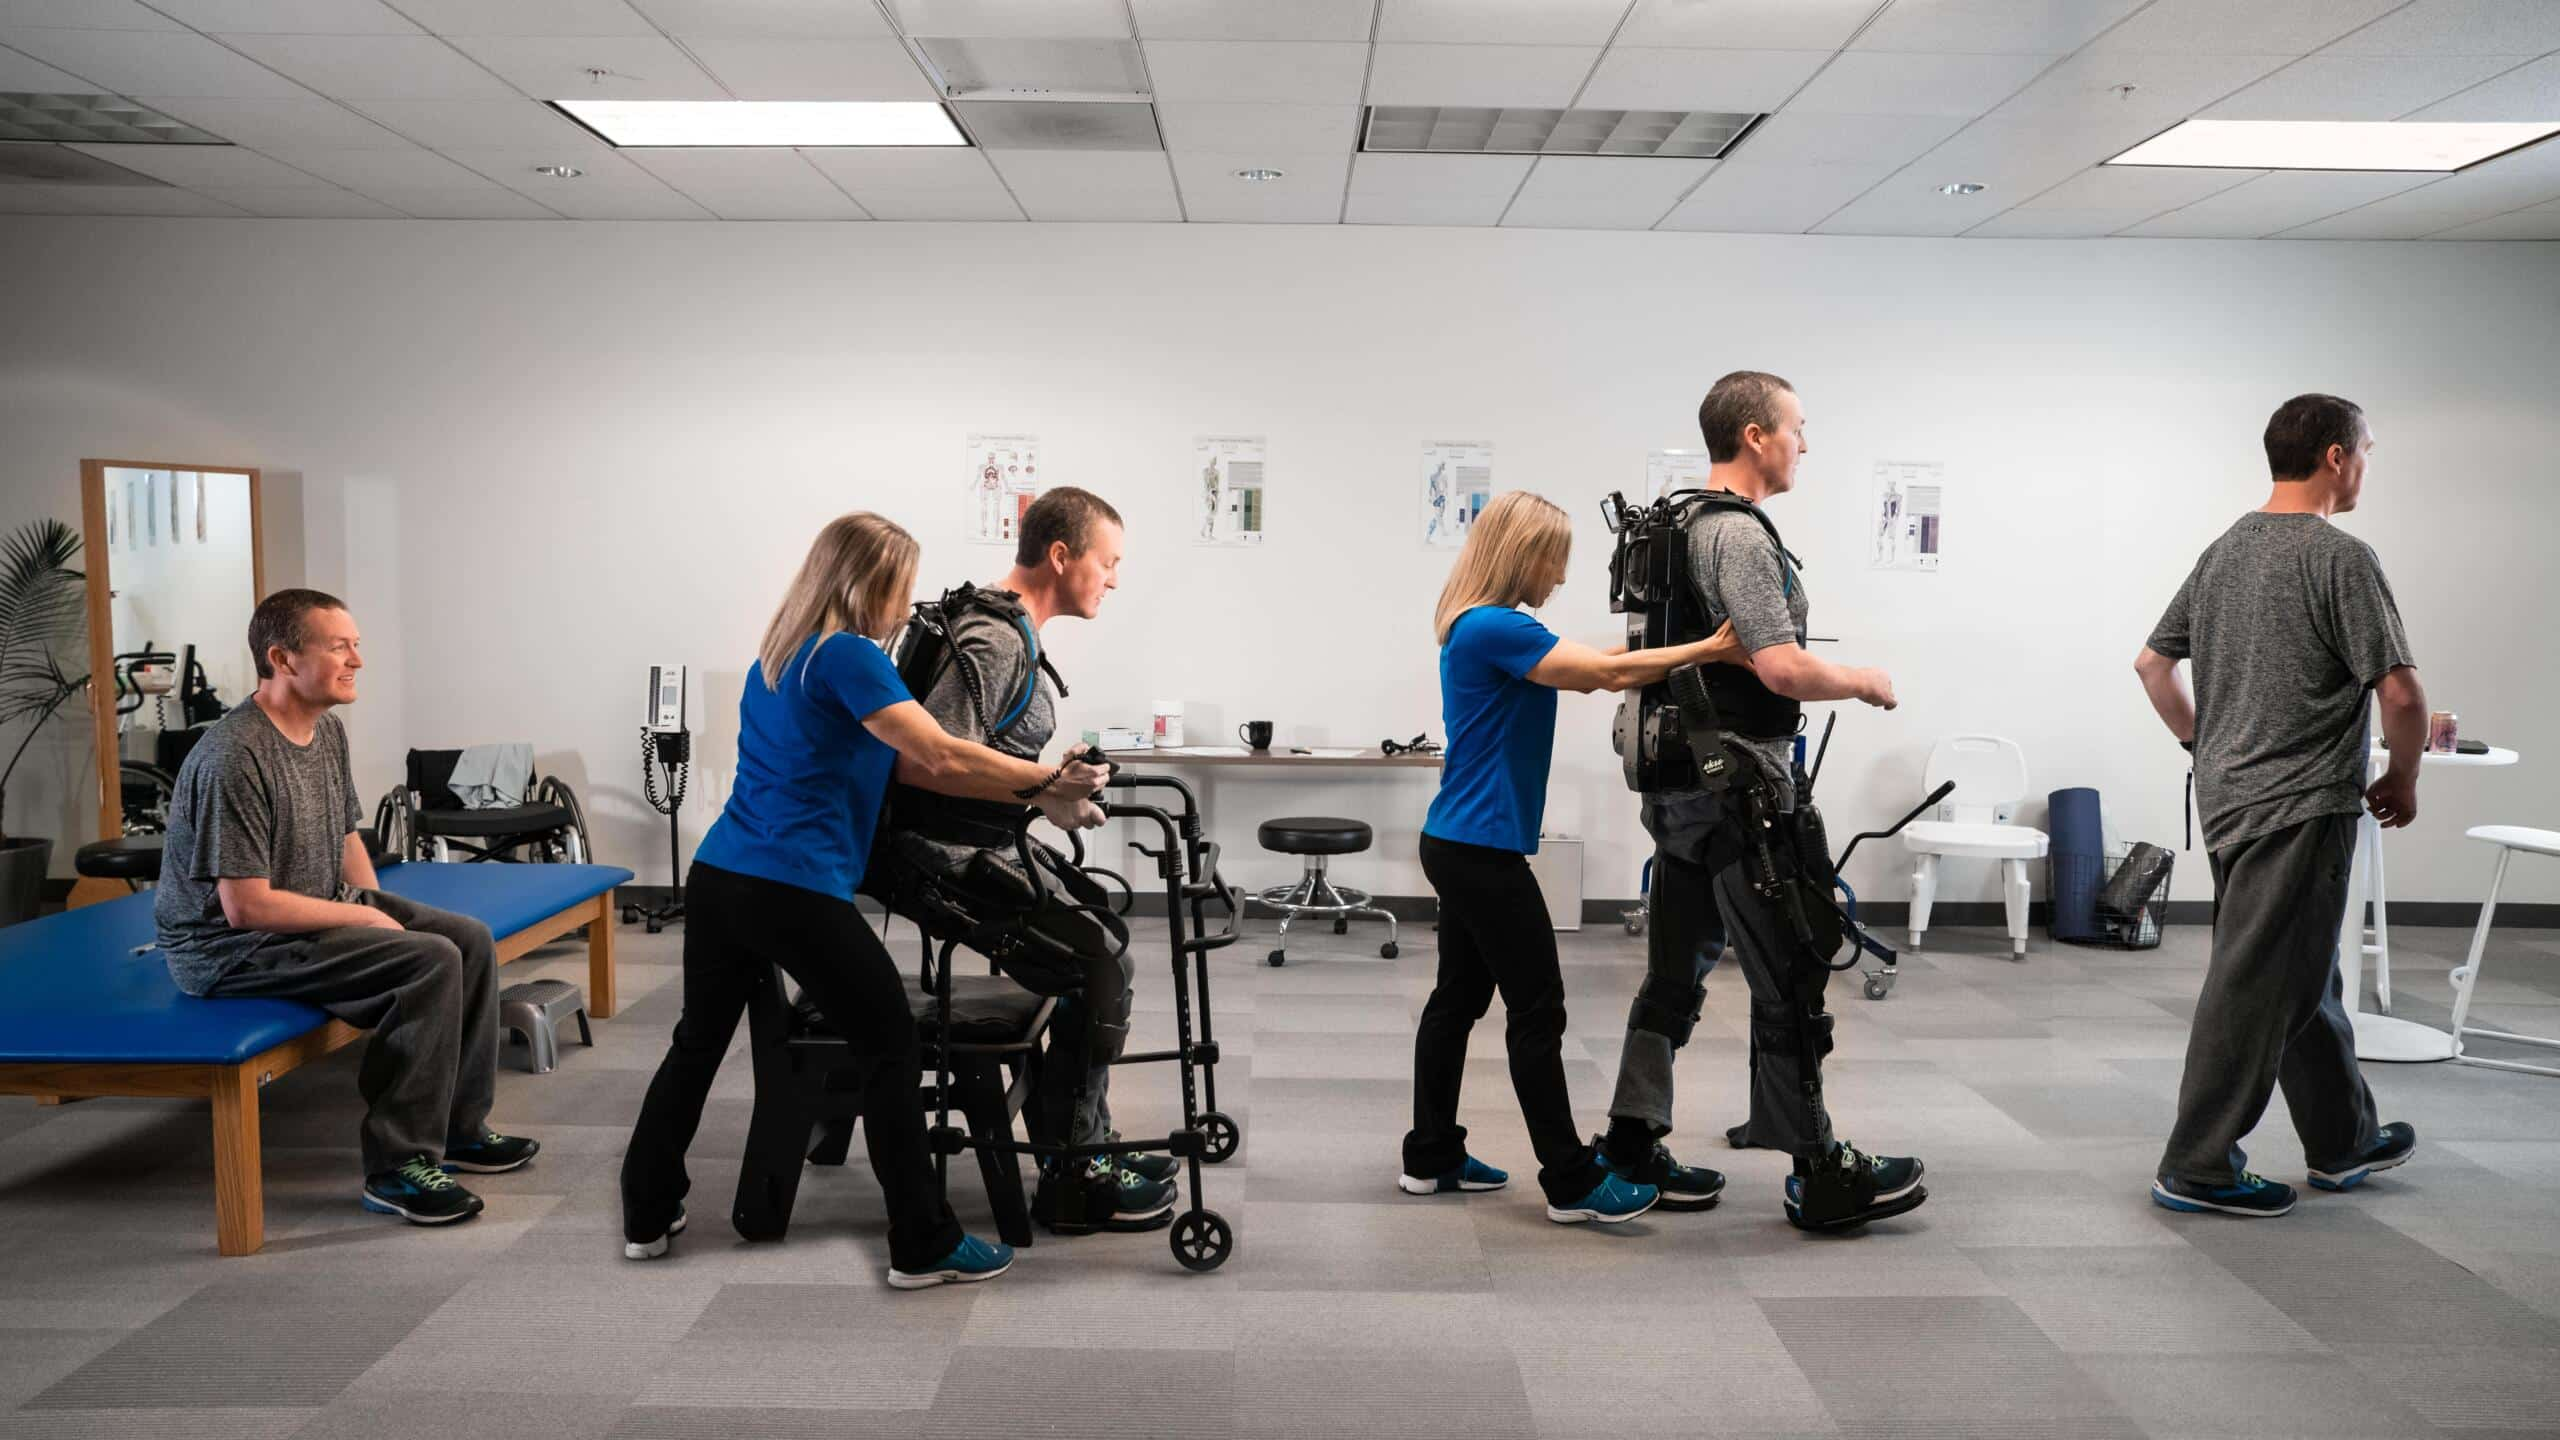 Robotic Assisted Gait Training: The Effects and Impacts for Those Who've Suffered from Spinal Cord Injury